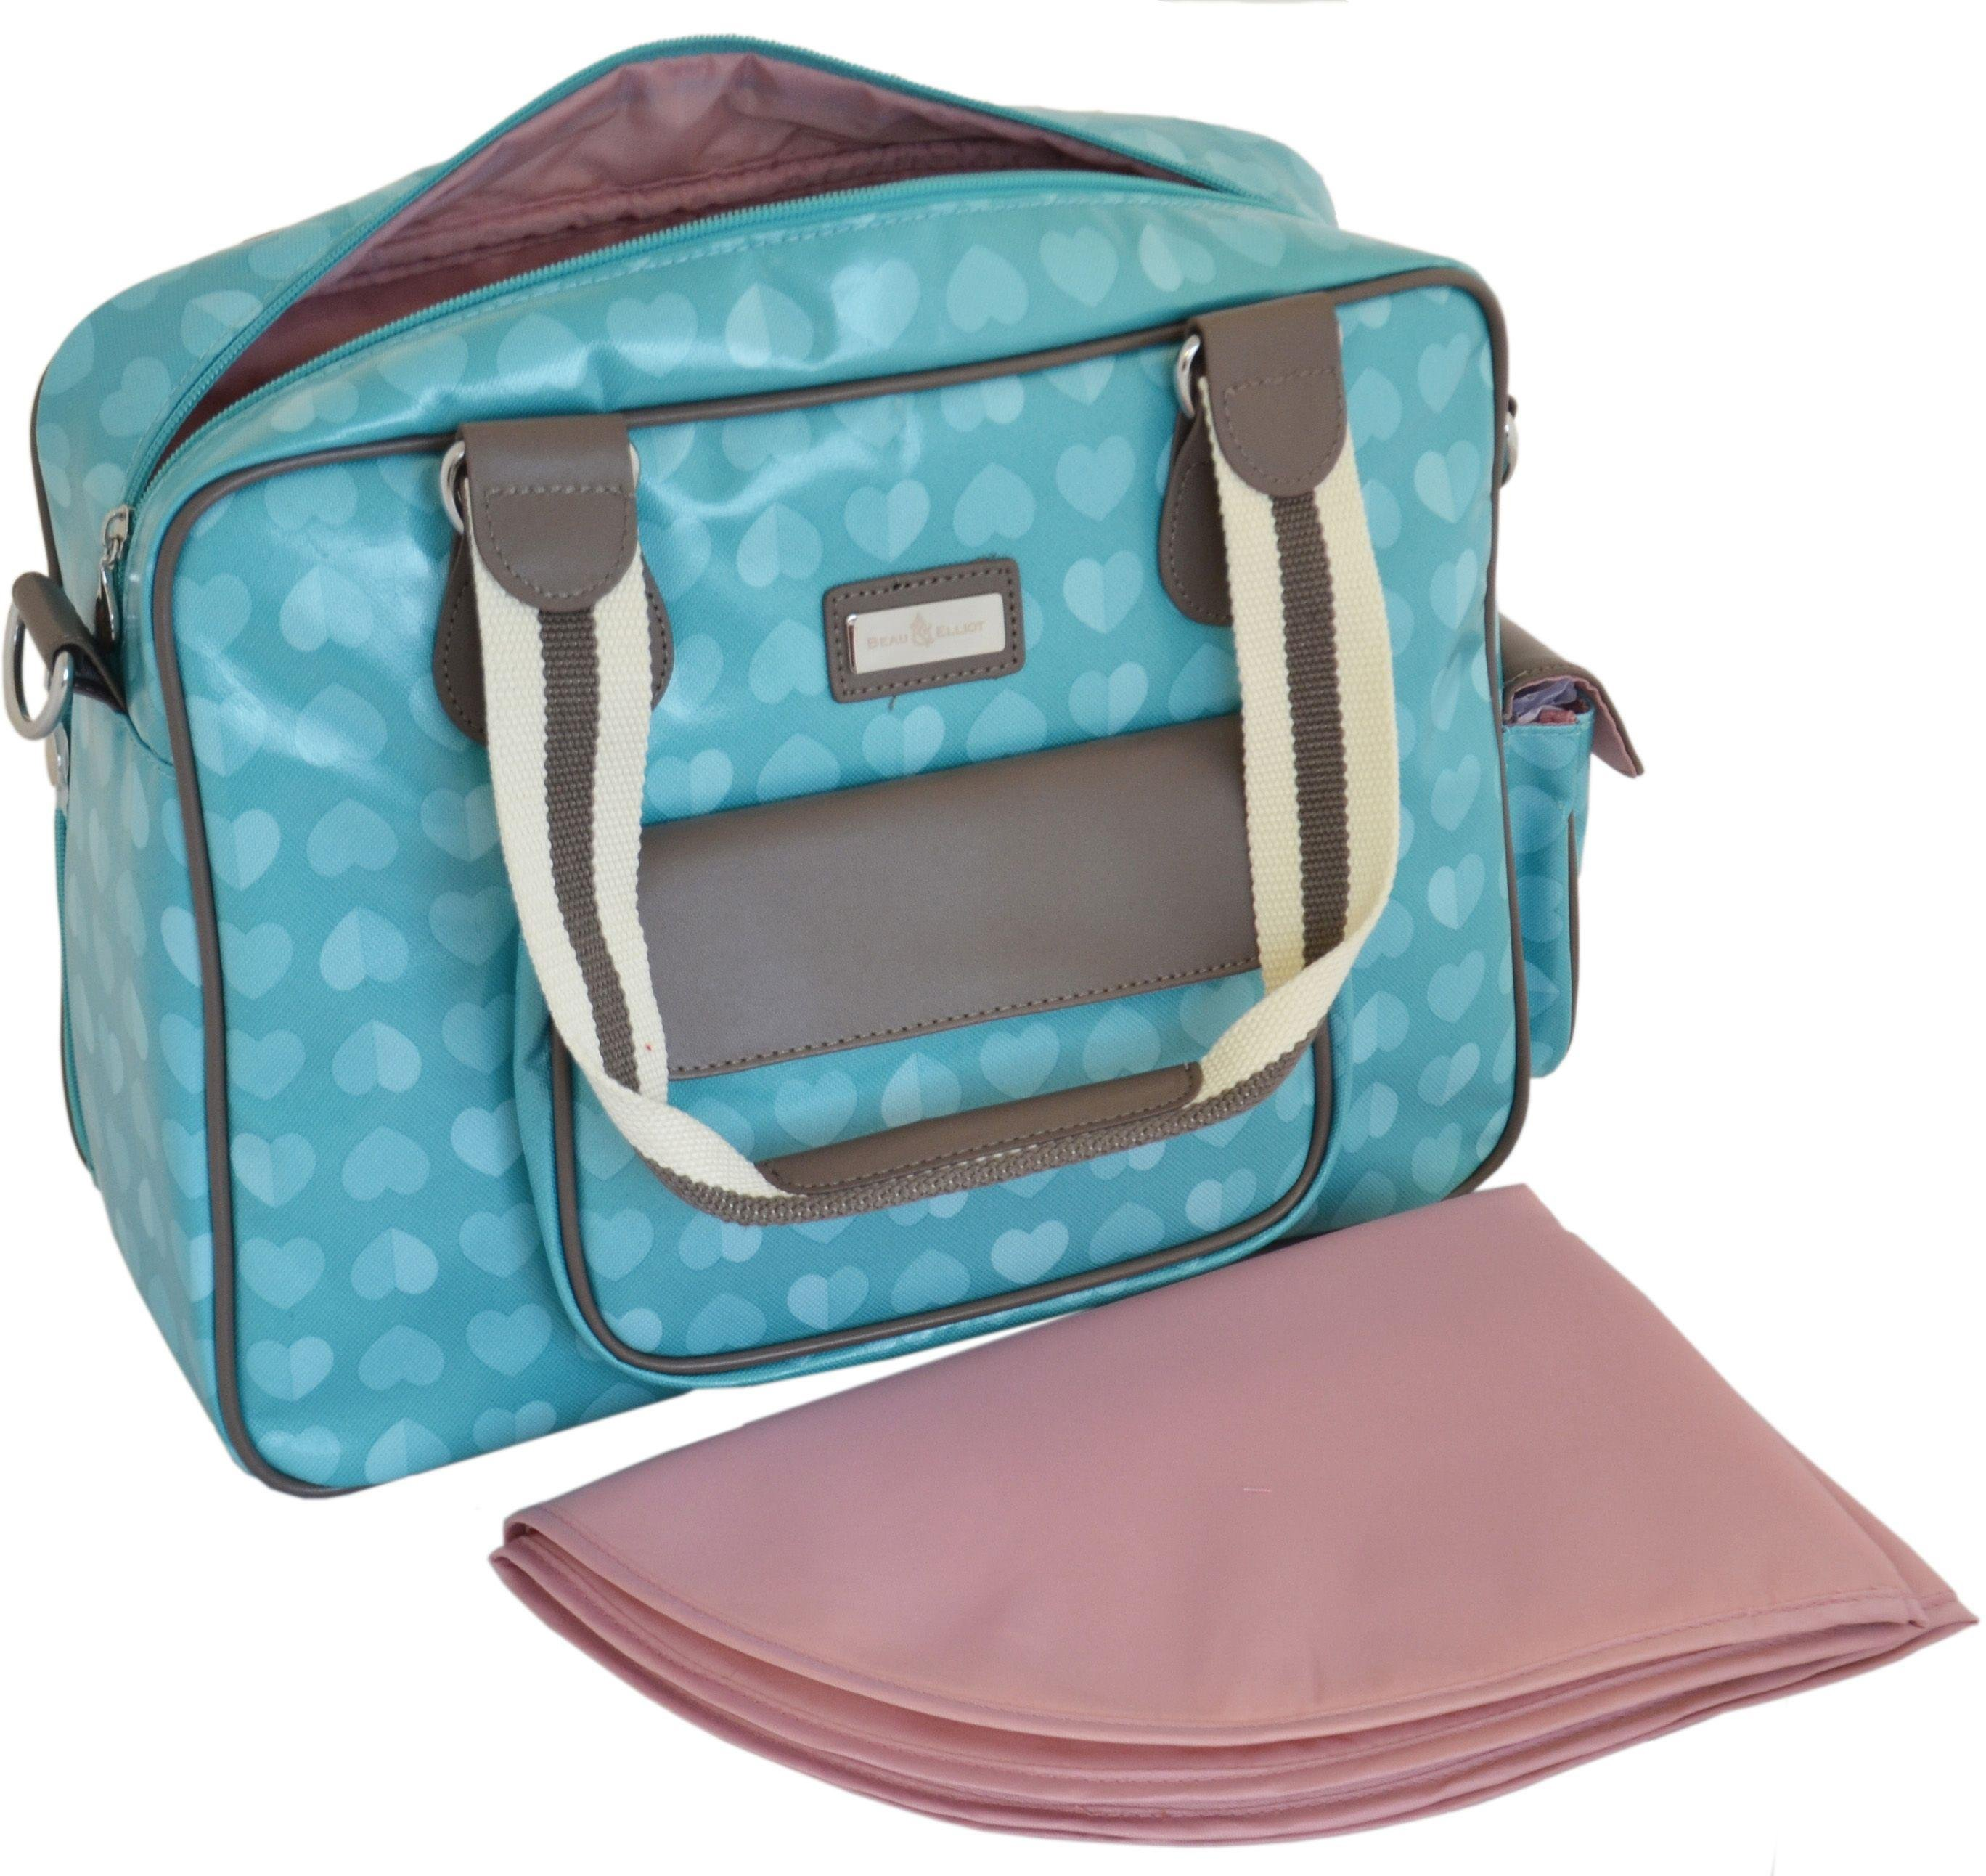 Image of Beau and Elliot Confetti Baby - Changing Bag - Aqua